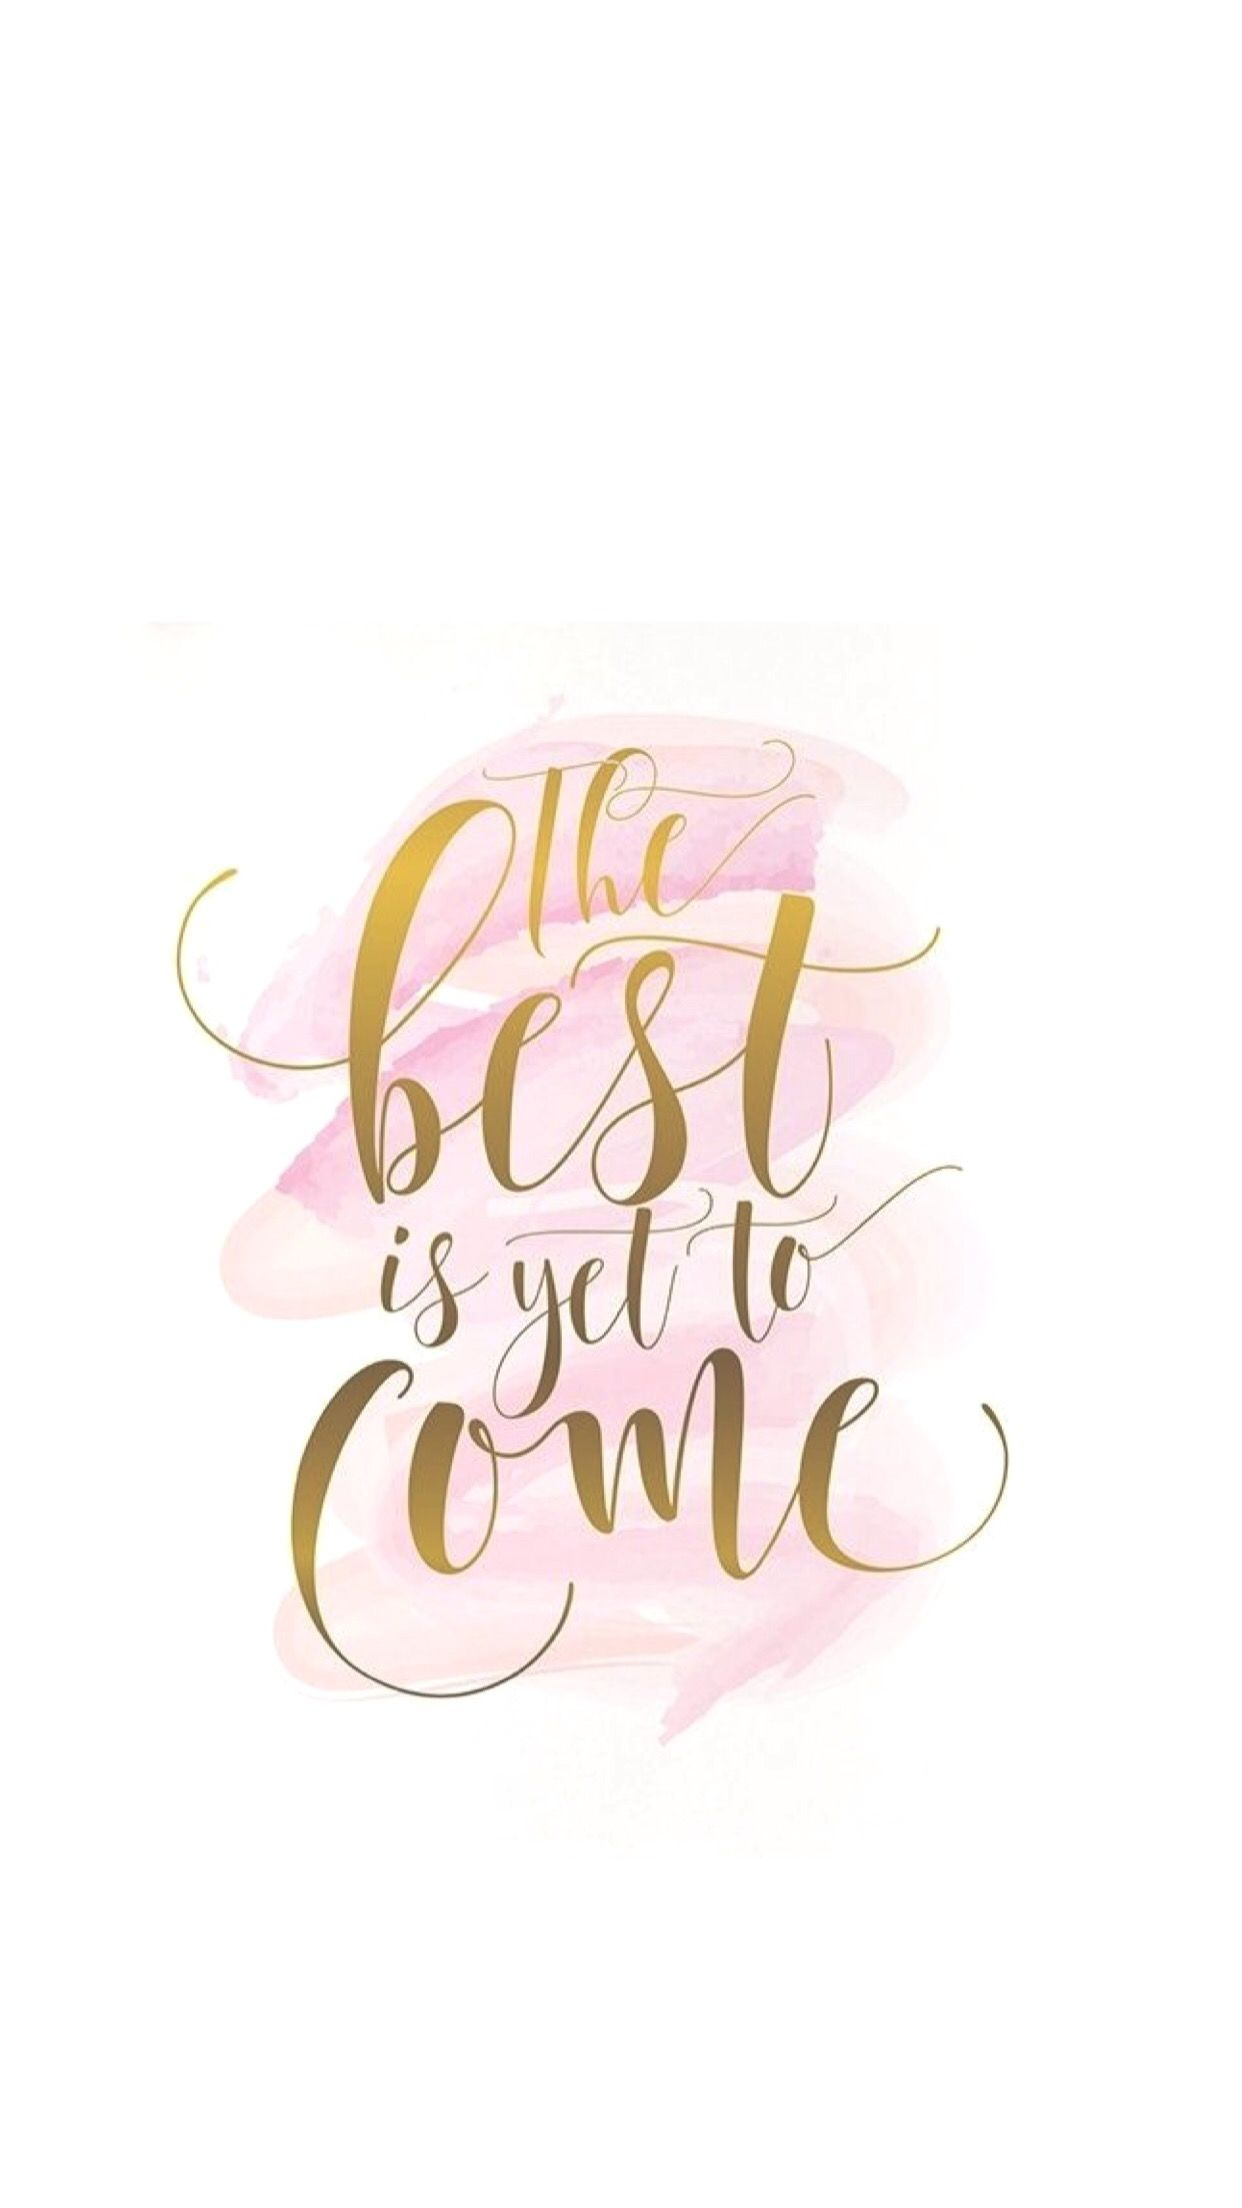 The best is yet to come. 💗💗💗